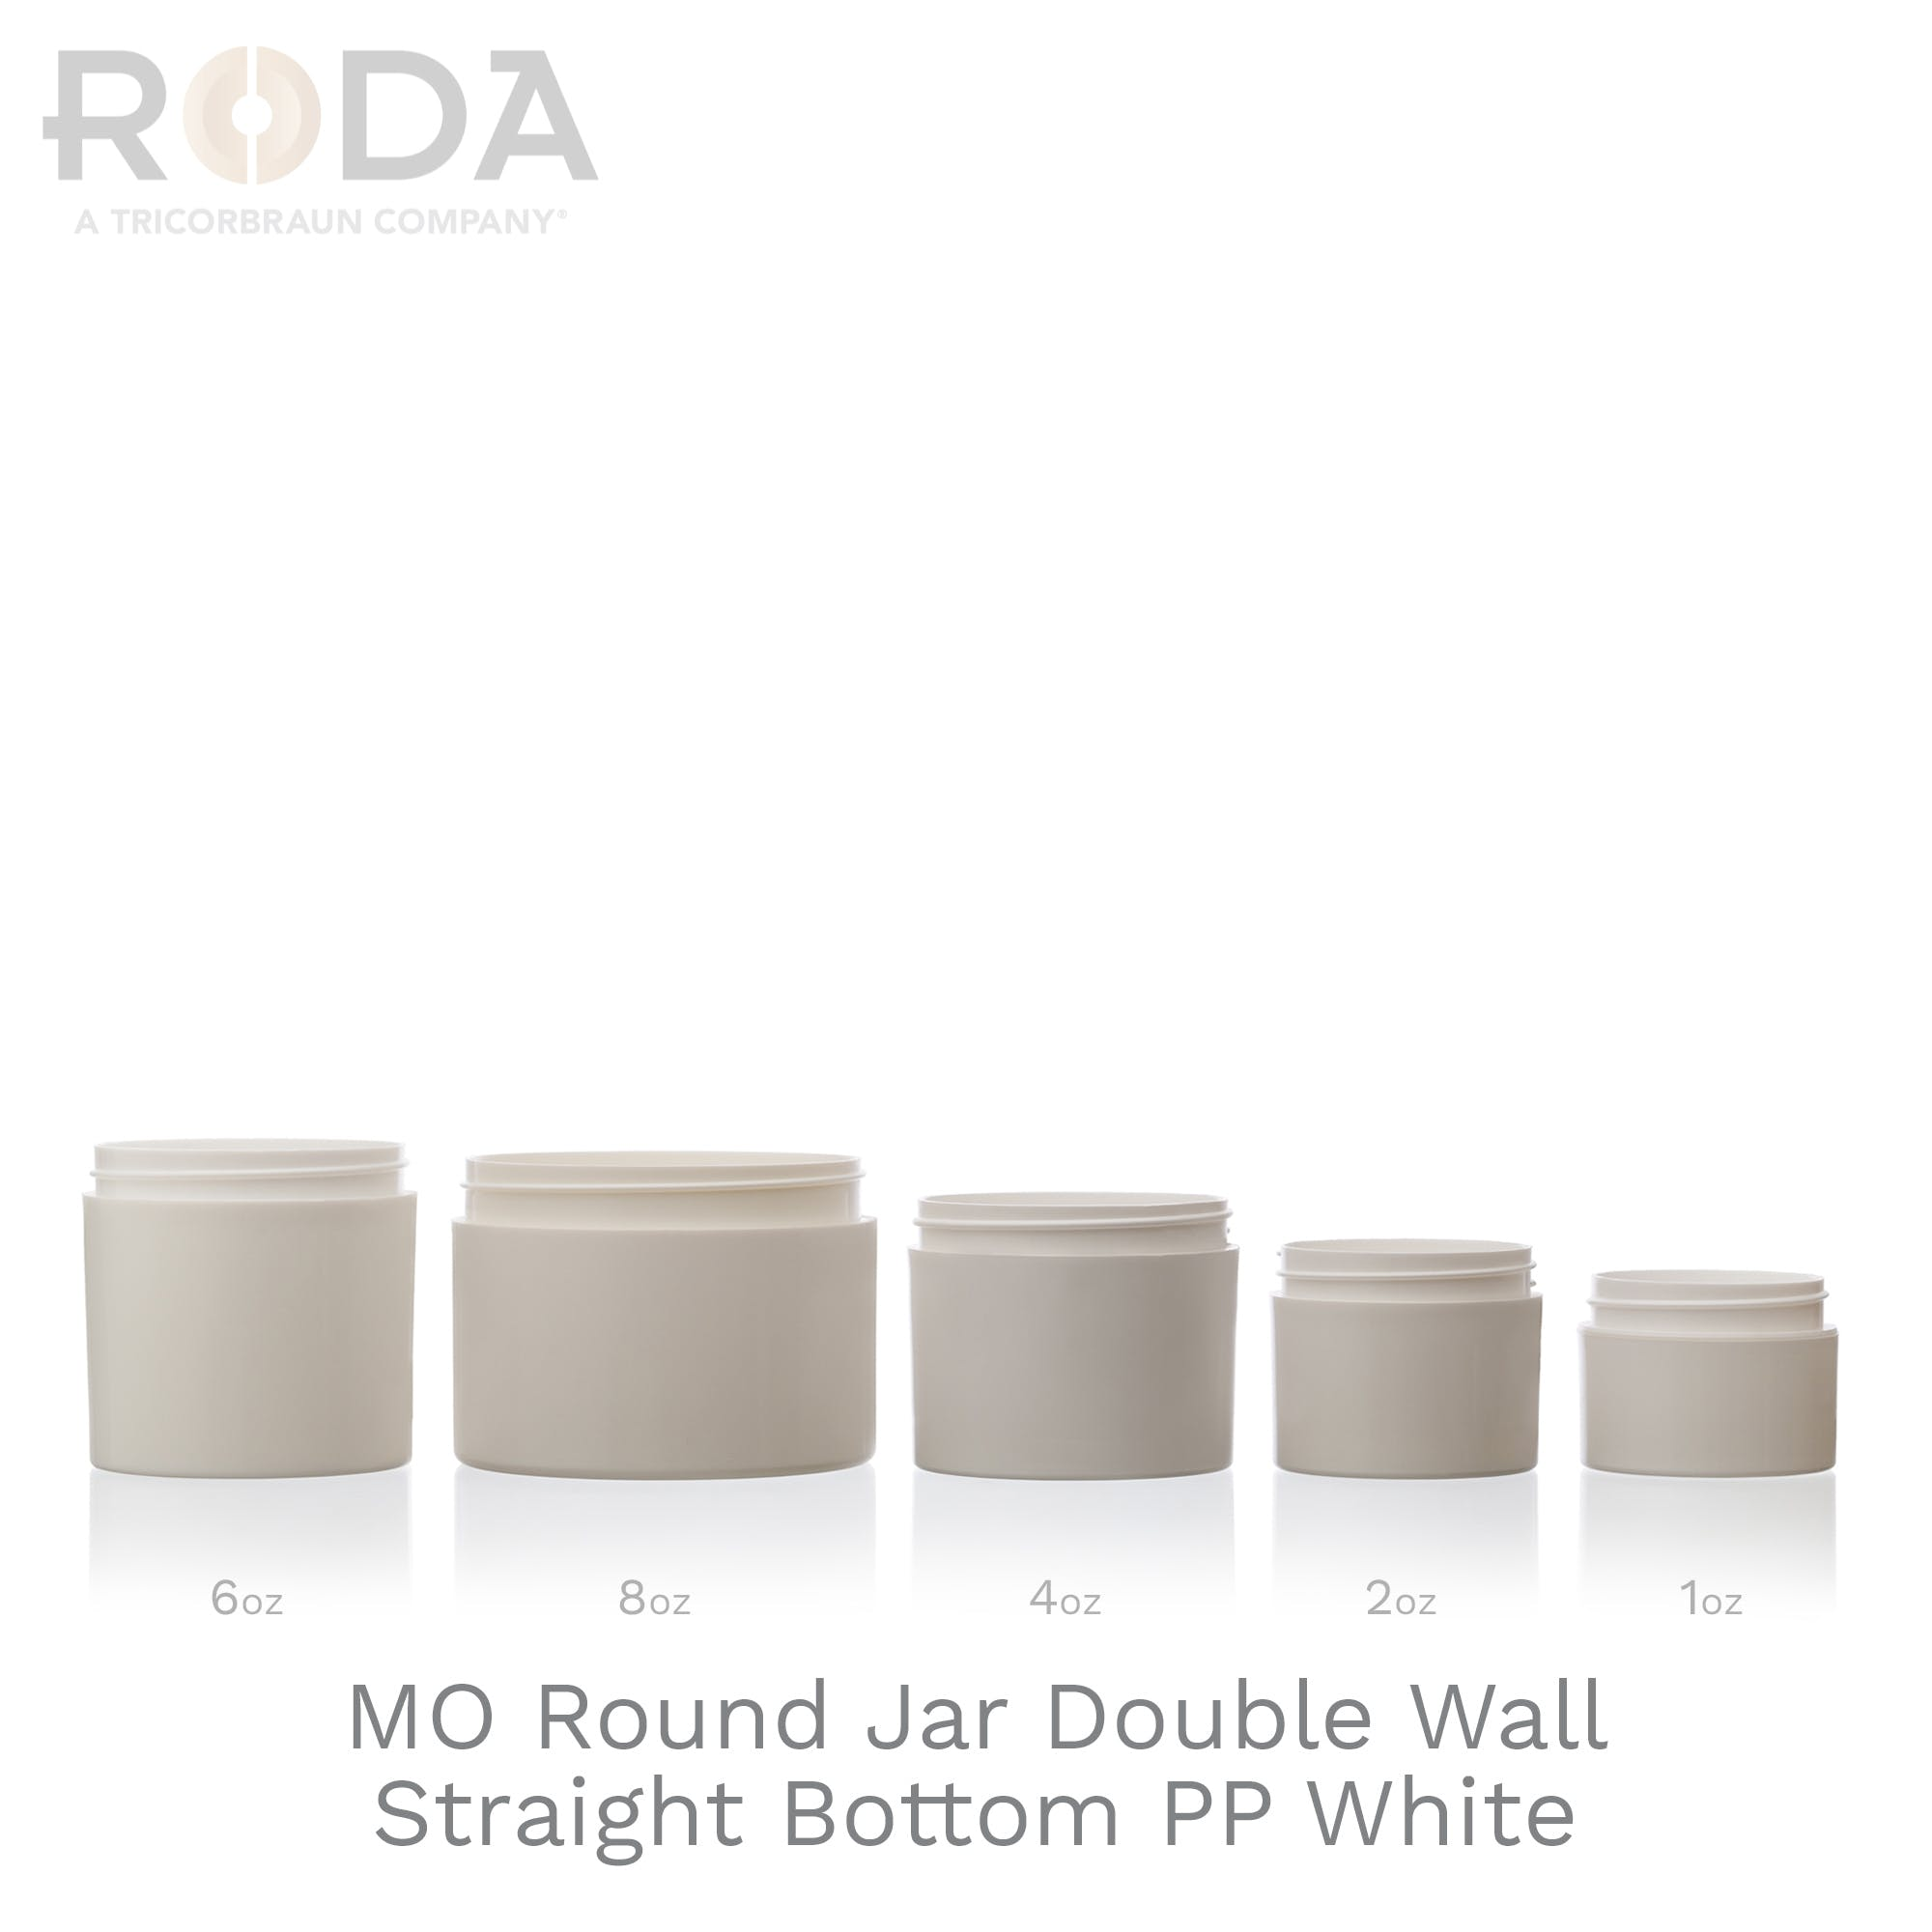 MO Round Jar Double Wall Straight Bottom PP White